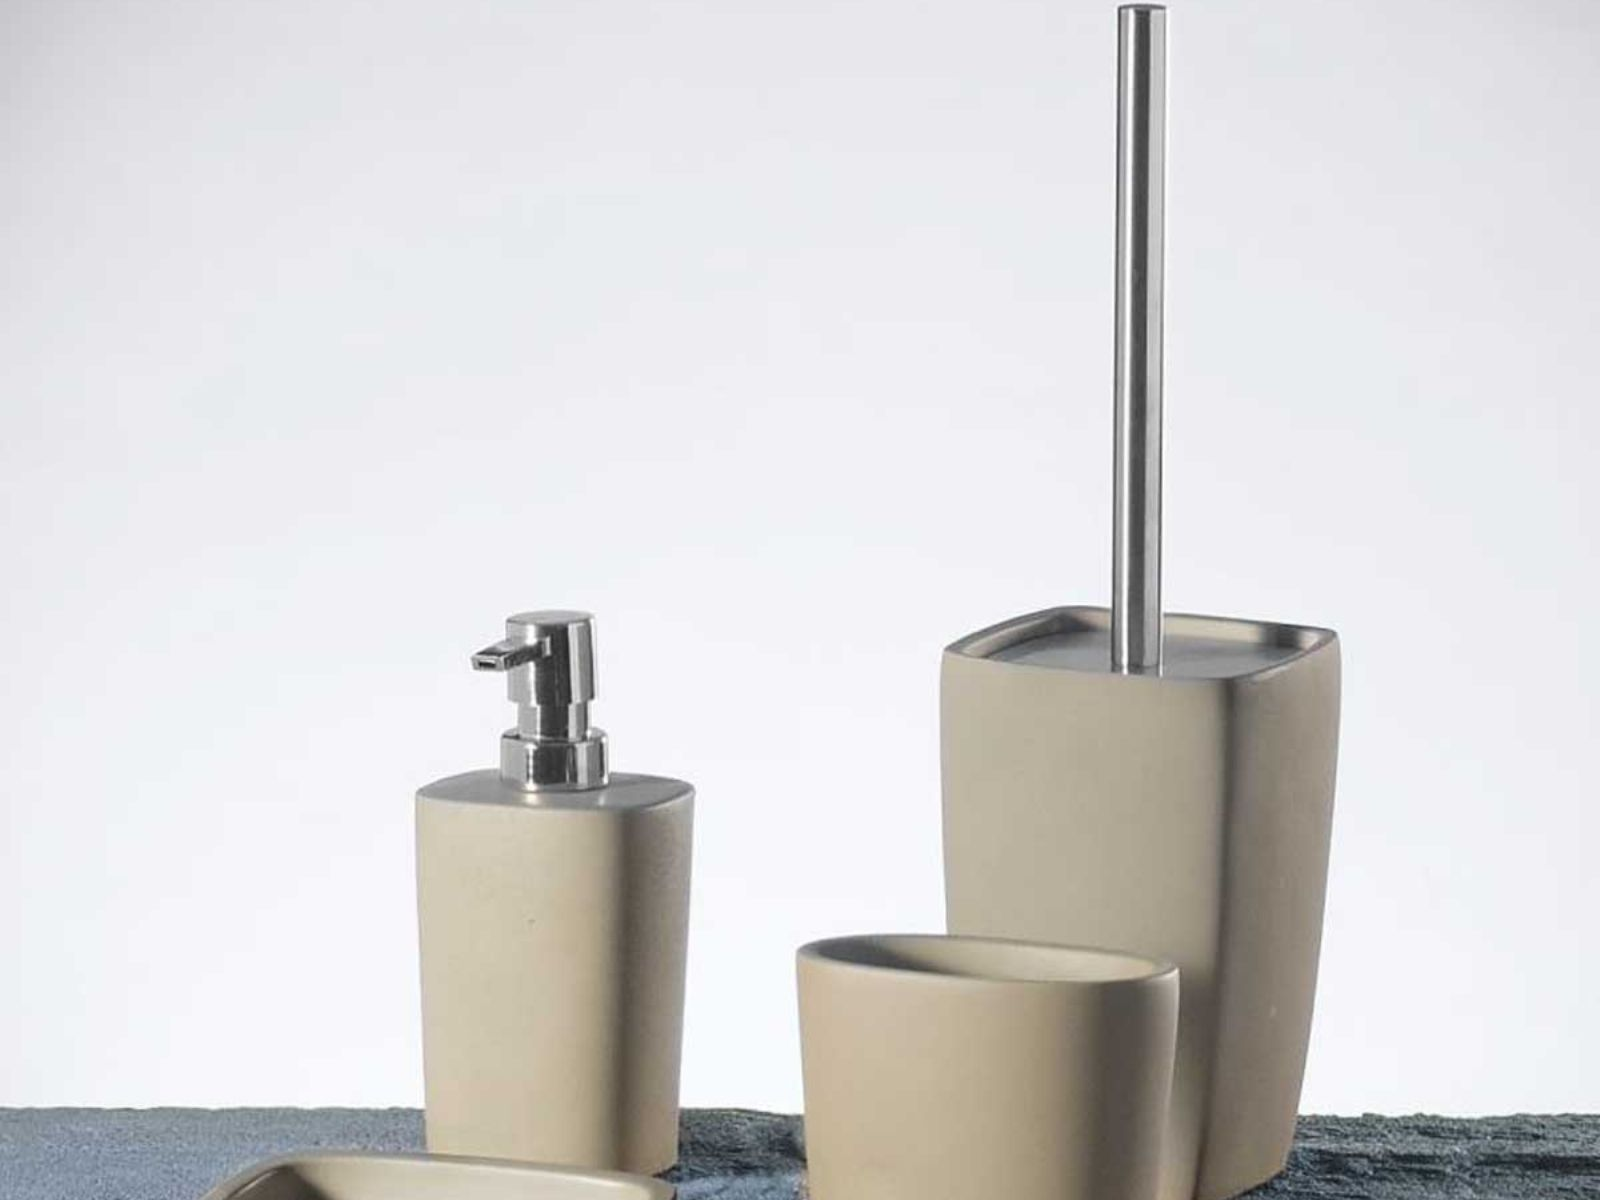 Accessori Bagno Accessori Bagno.Set Accessori Bagno Horus Metaform